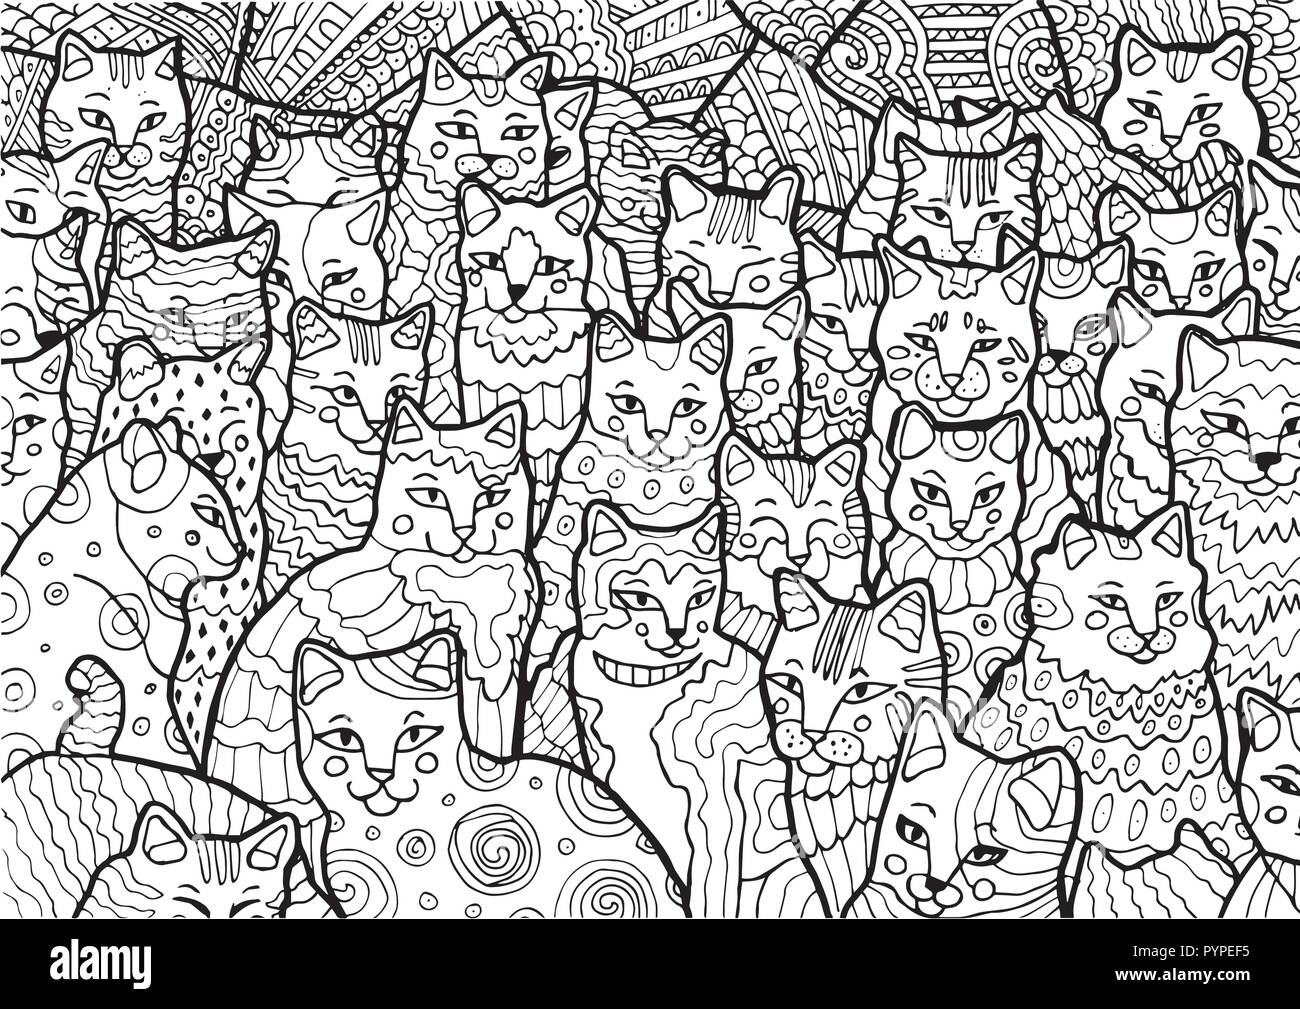 Cartoon Doodle Cat Coloring Immagini Cartoon Doodle Cat Coloring